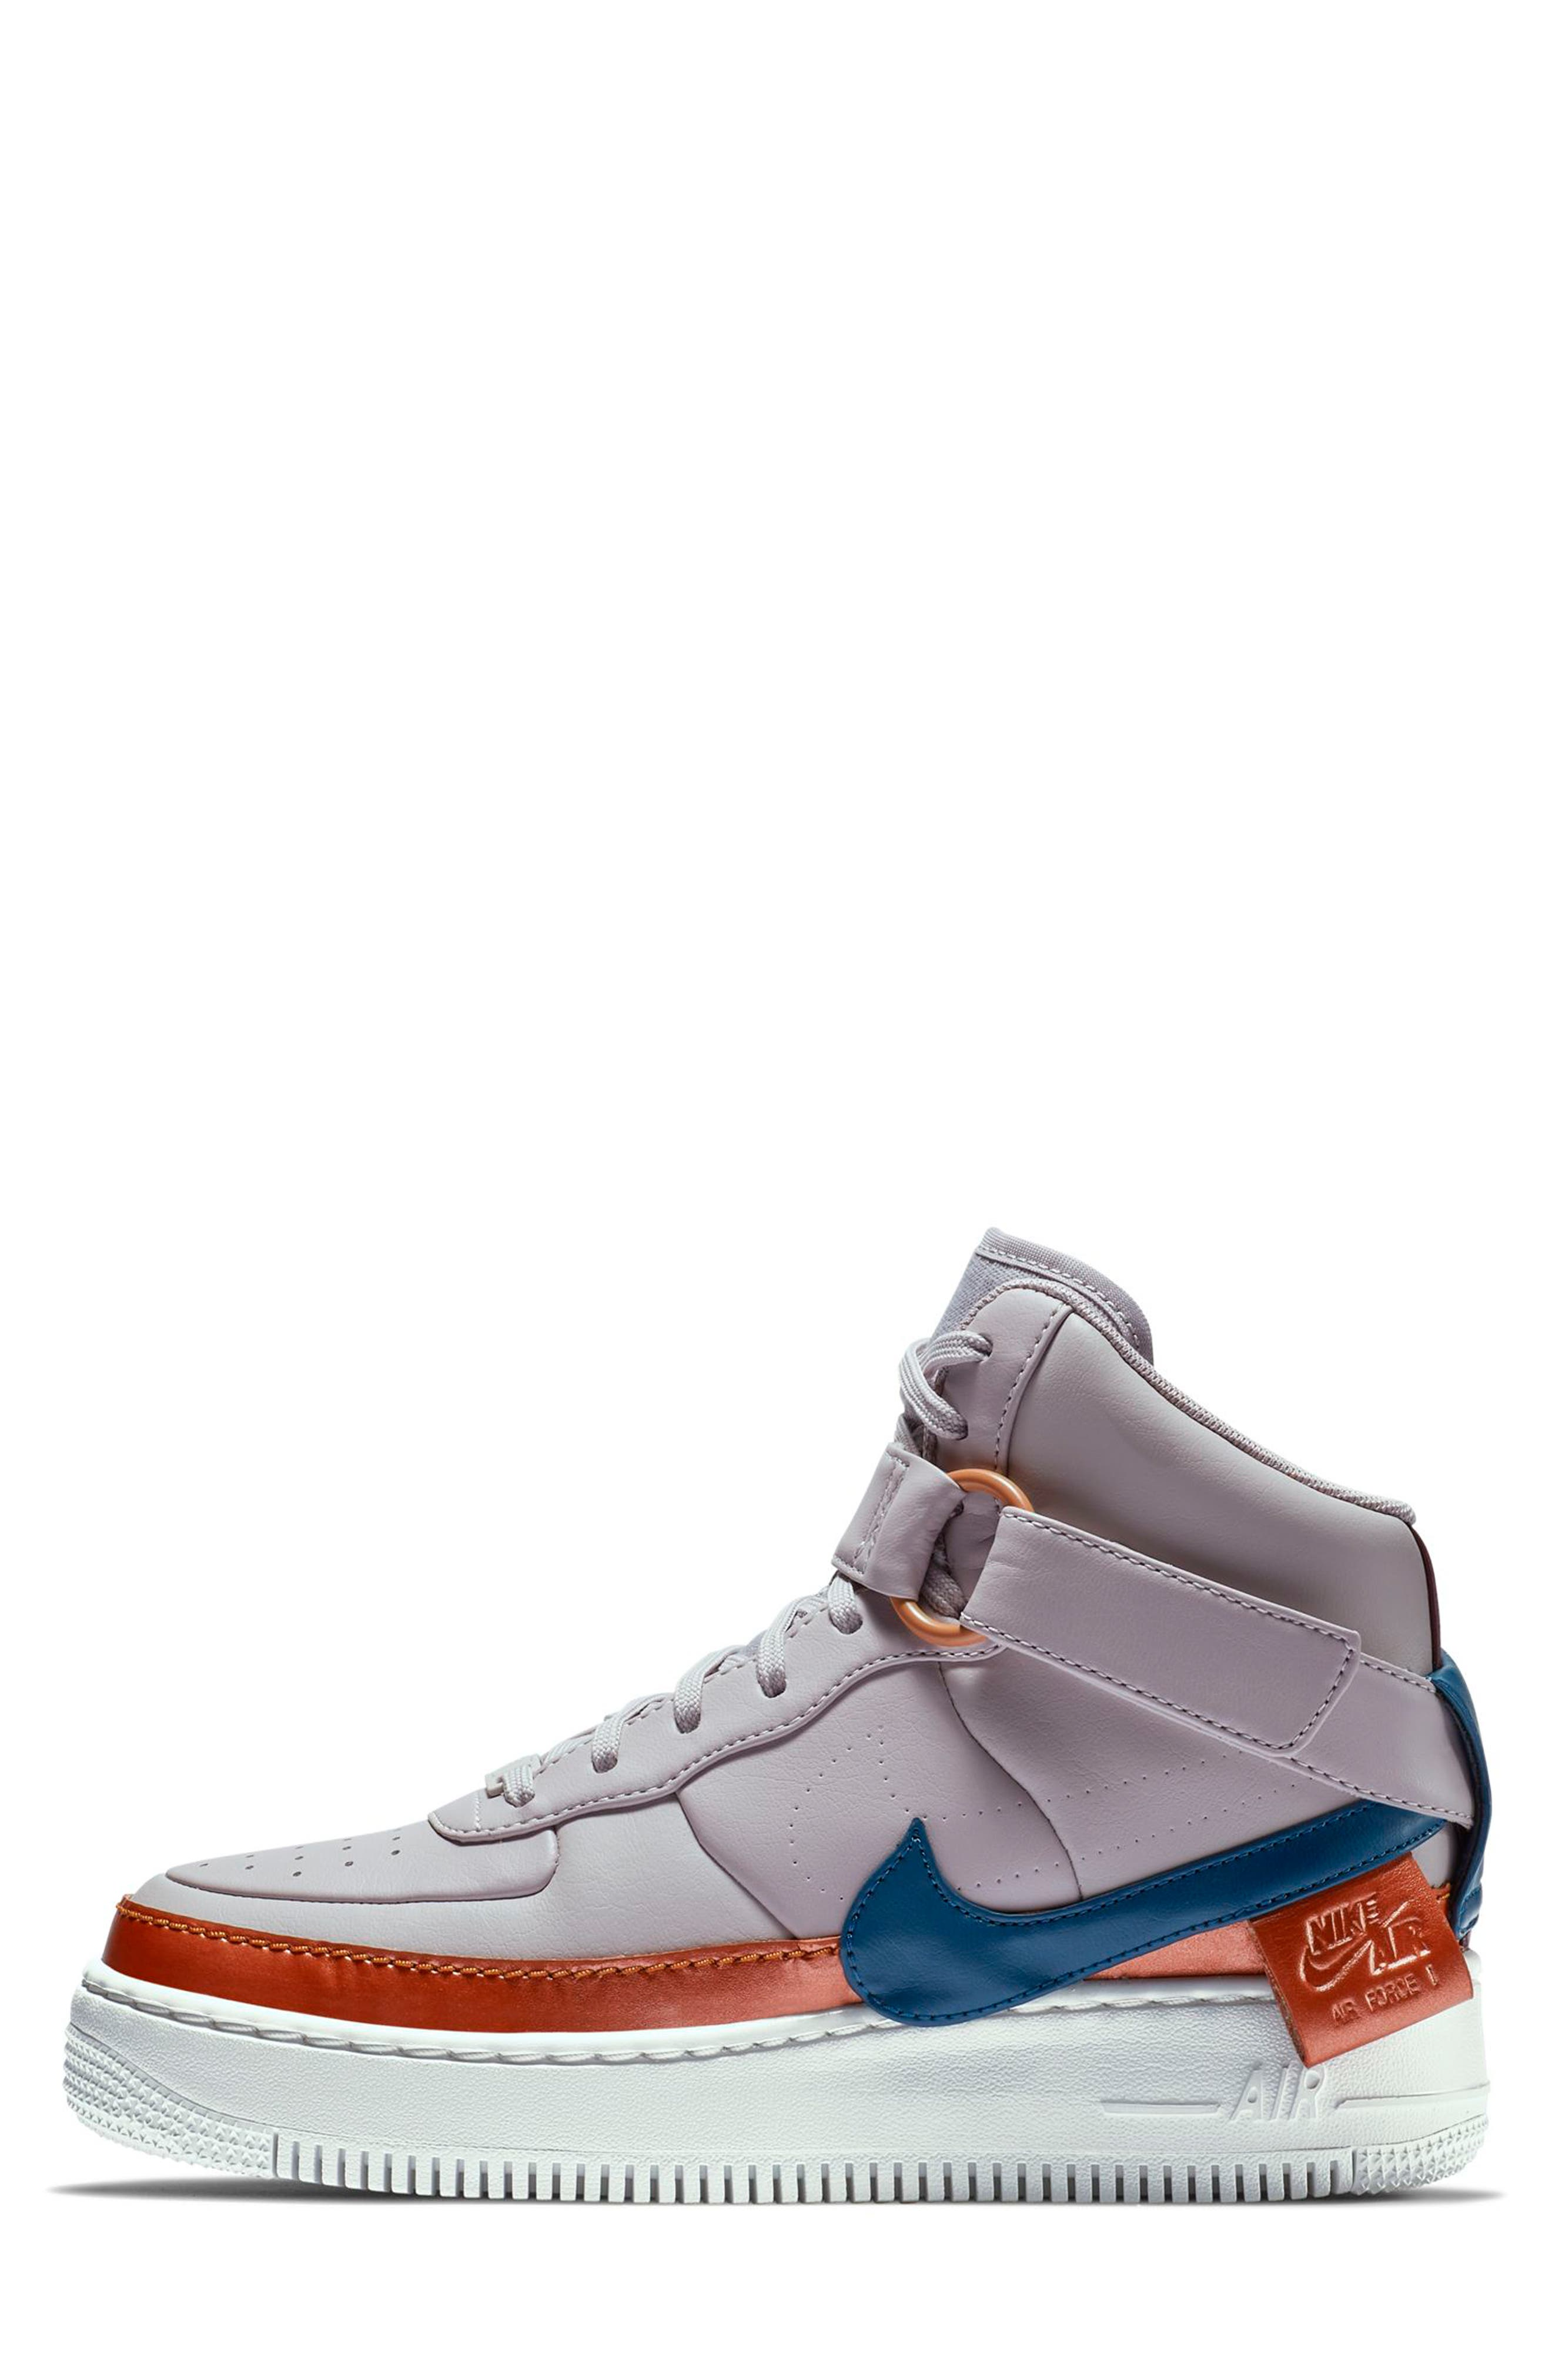 NIKE, Air Force 1 Jester High XX Sneaker, Alternate thumbnail 3, color, 500